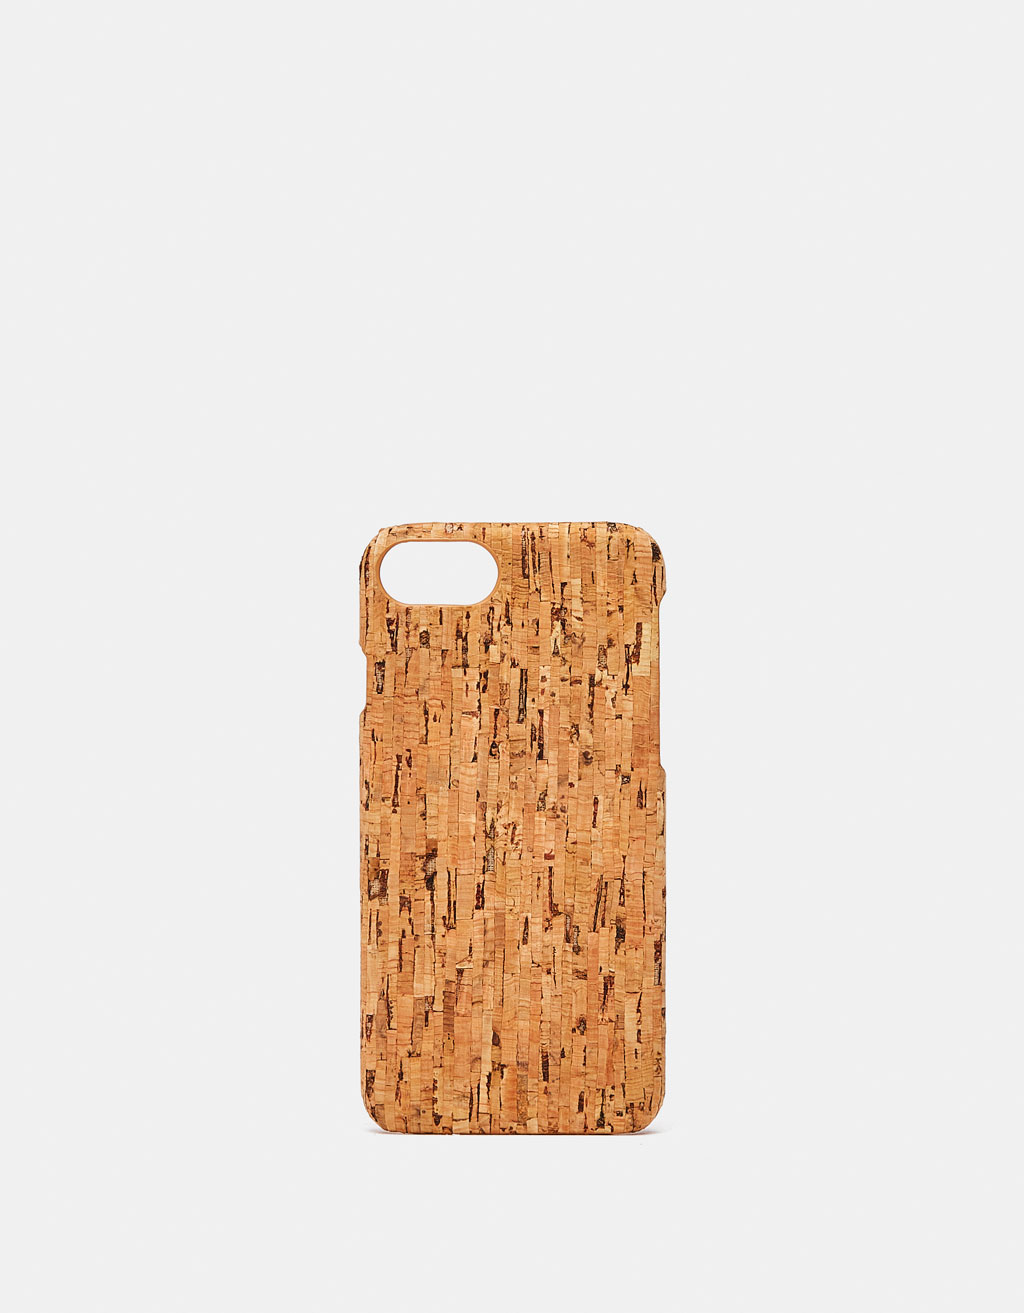 Cork-effect iPhone 6/7/8 case